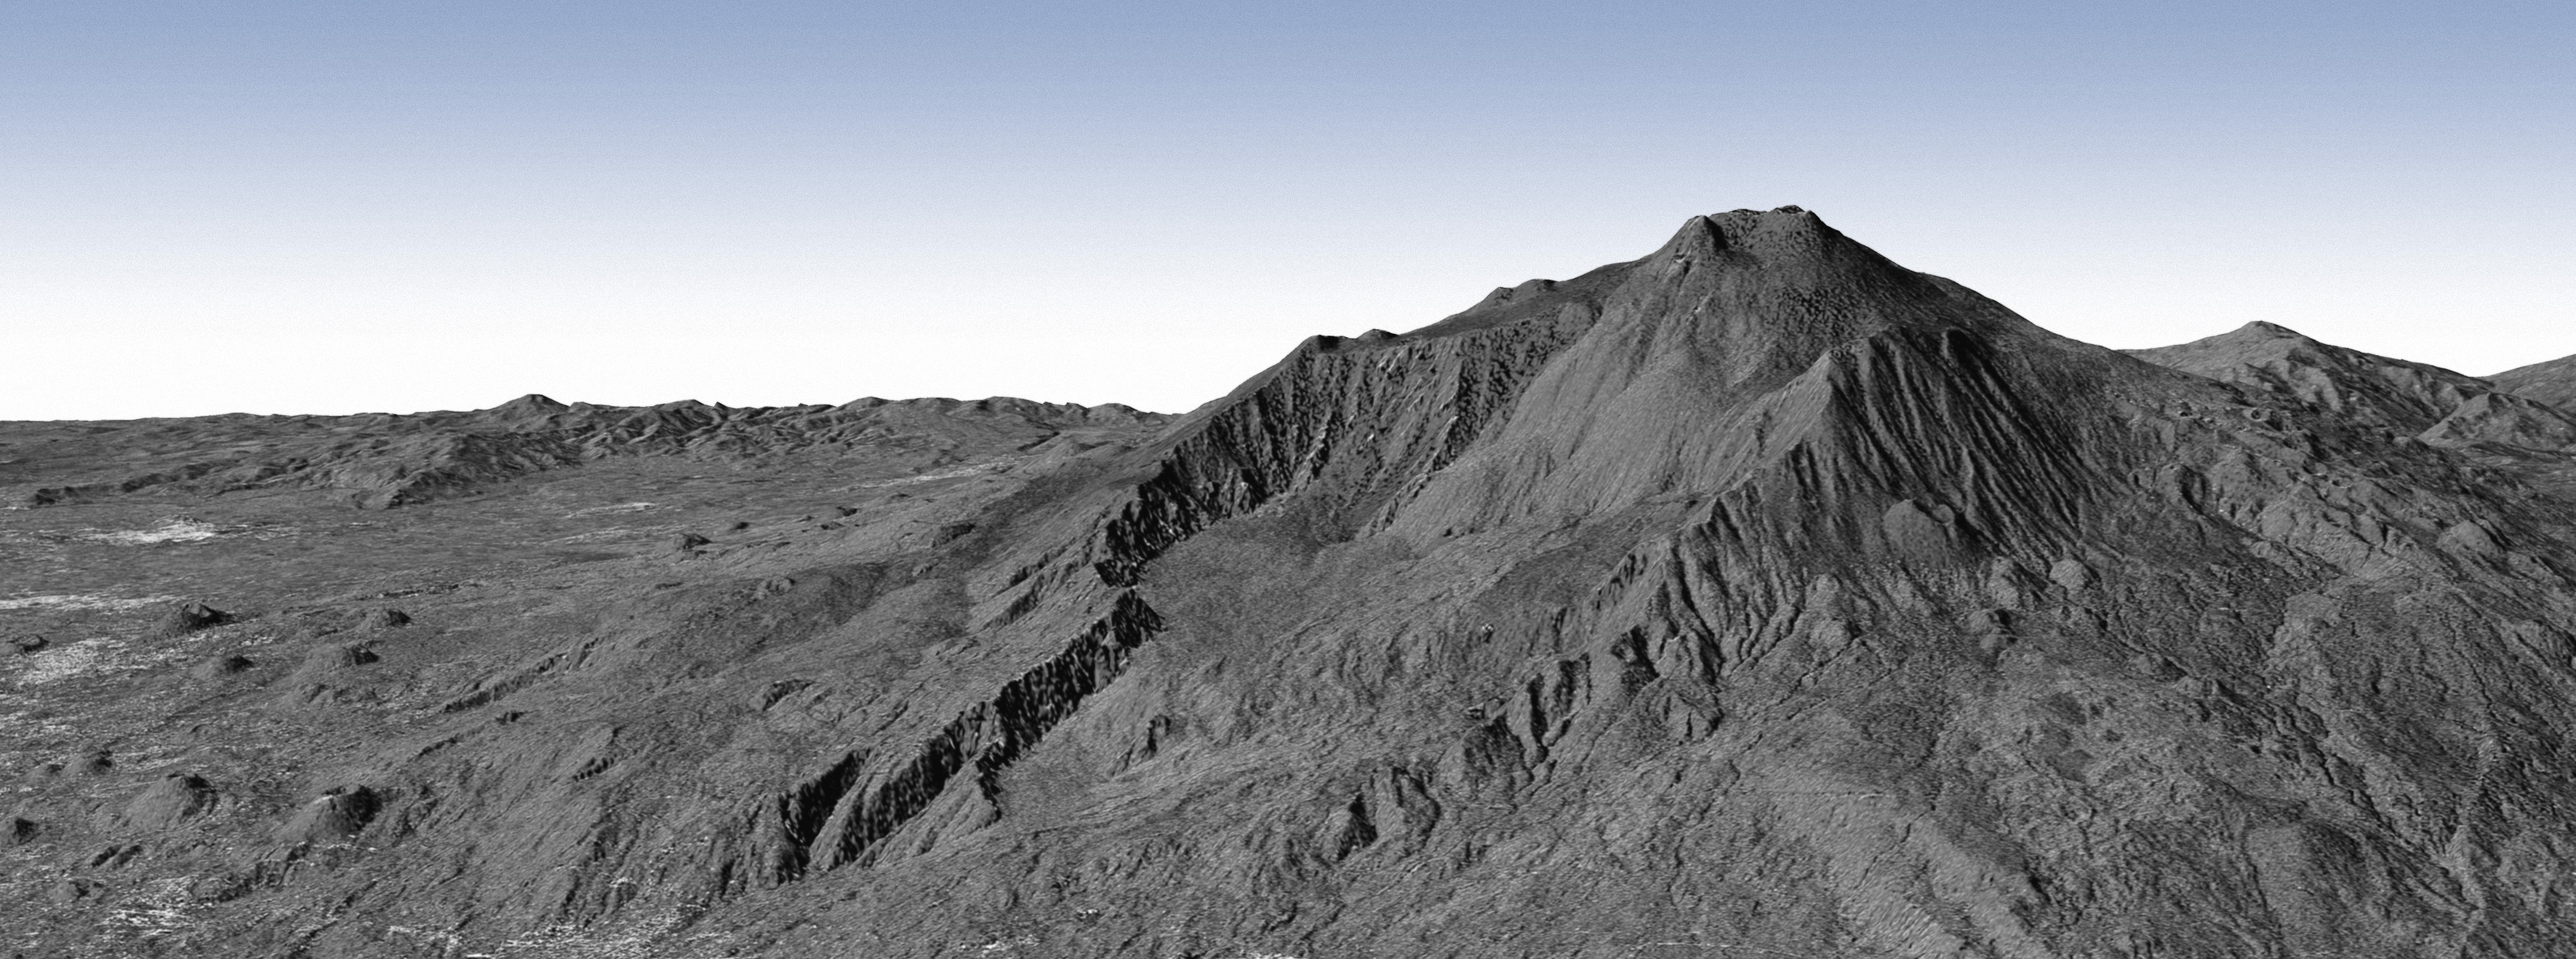 Radar Topographic View Of A Volcano The Planetary Society - Digital elevation model download